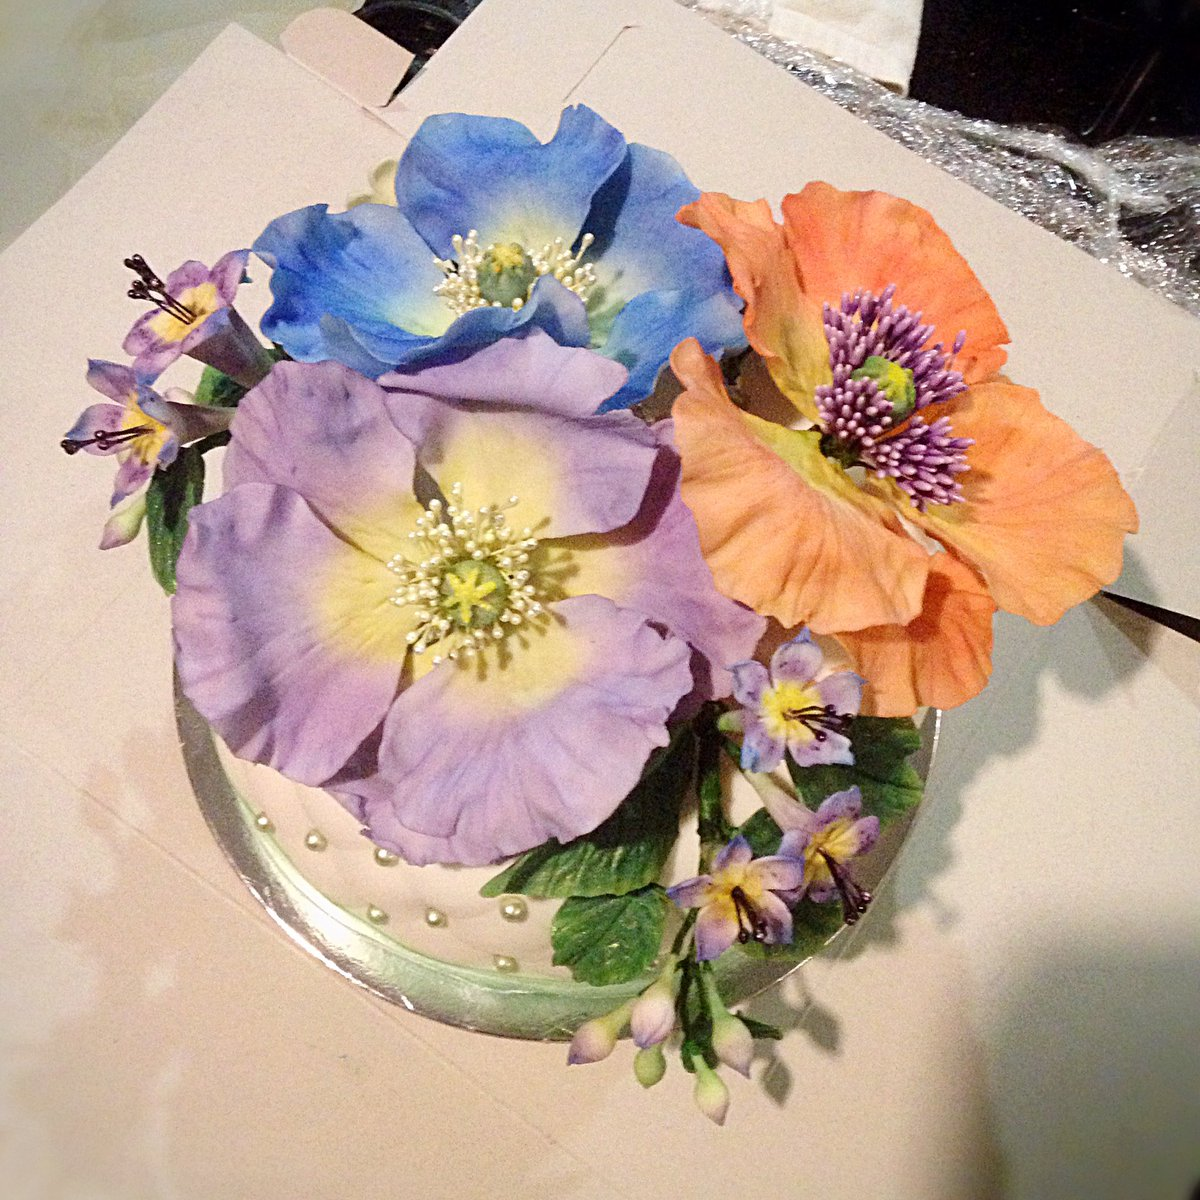 Gumpaste hashtag on twitter the flowers are randomly colored poppy flowers and various filler flowers cakeart gumpaste sugarflowers cakespicitter4wwv6wqlcn izmirmasajfo